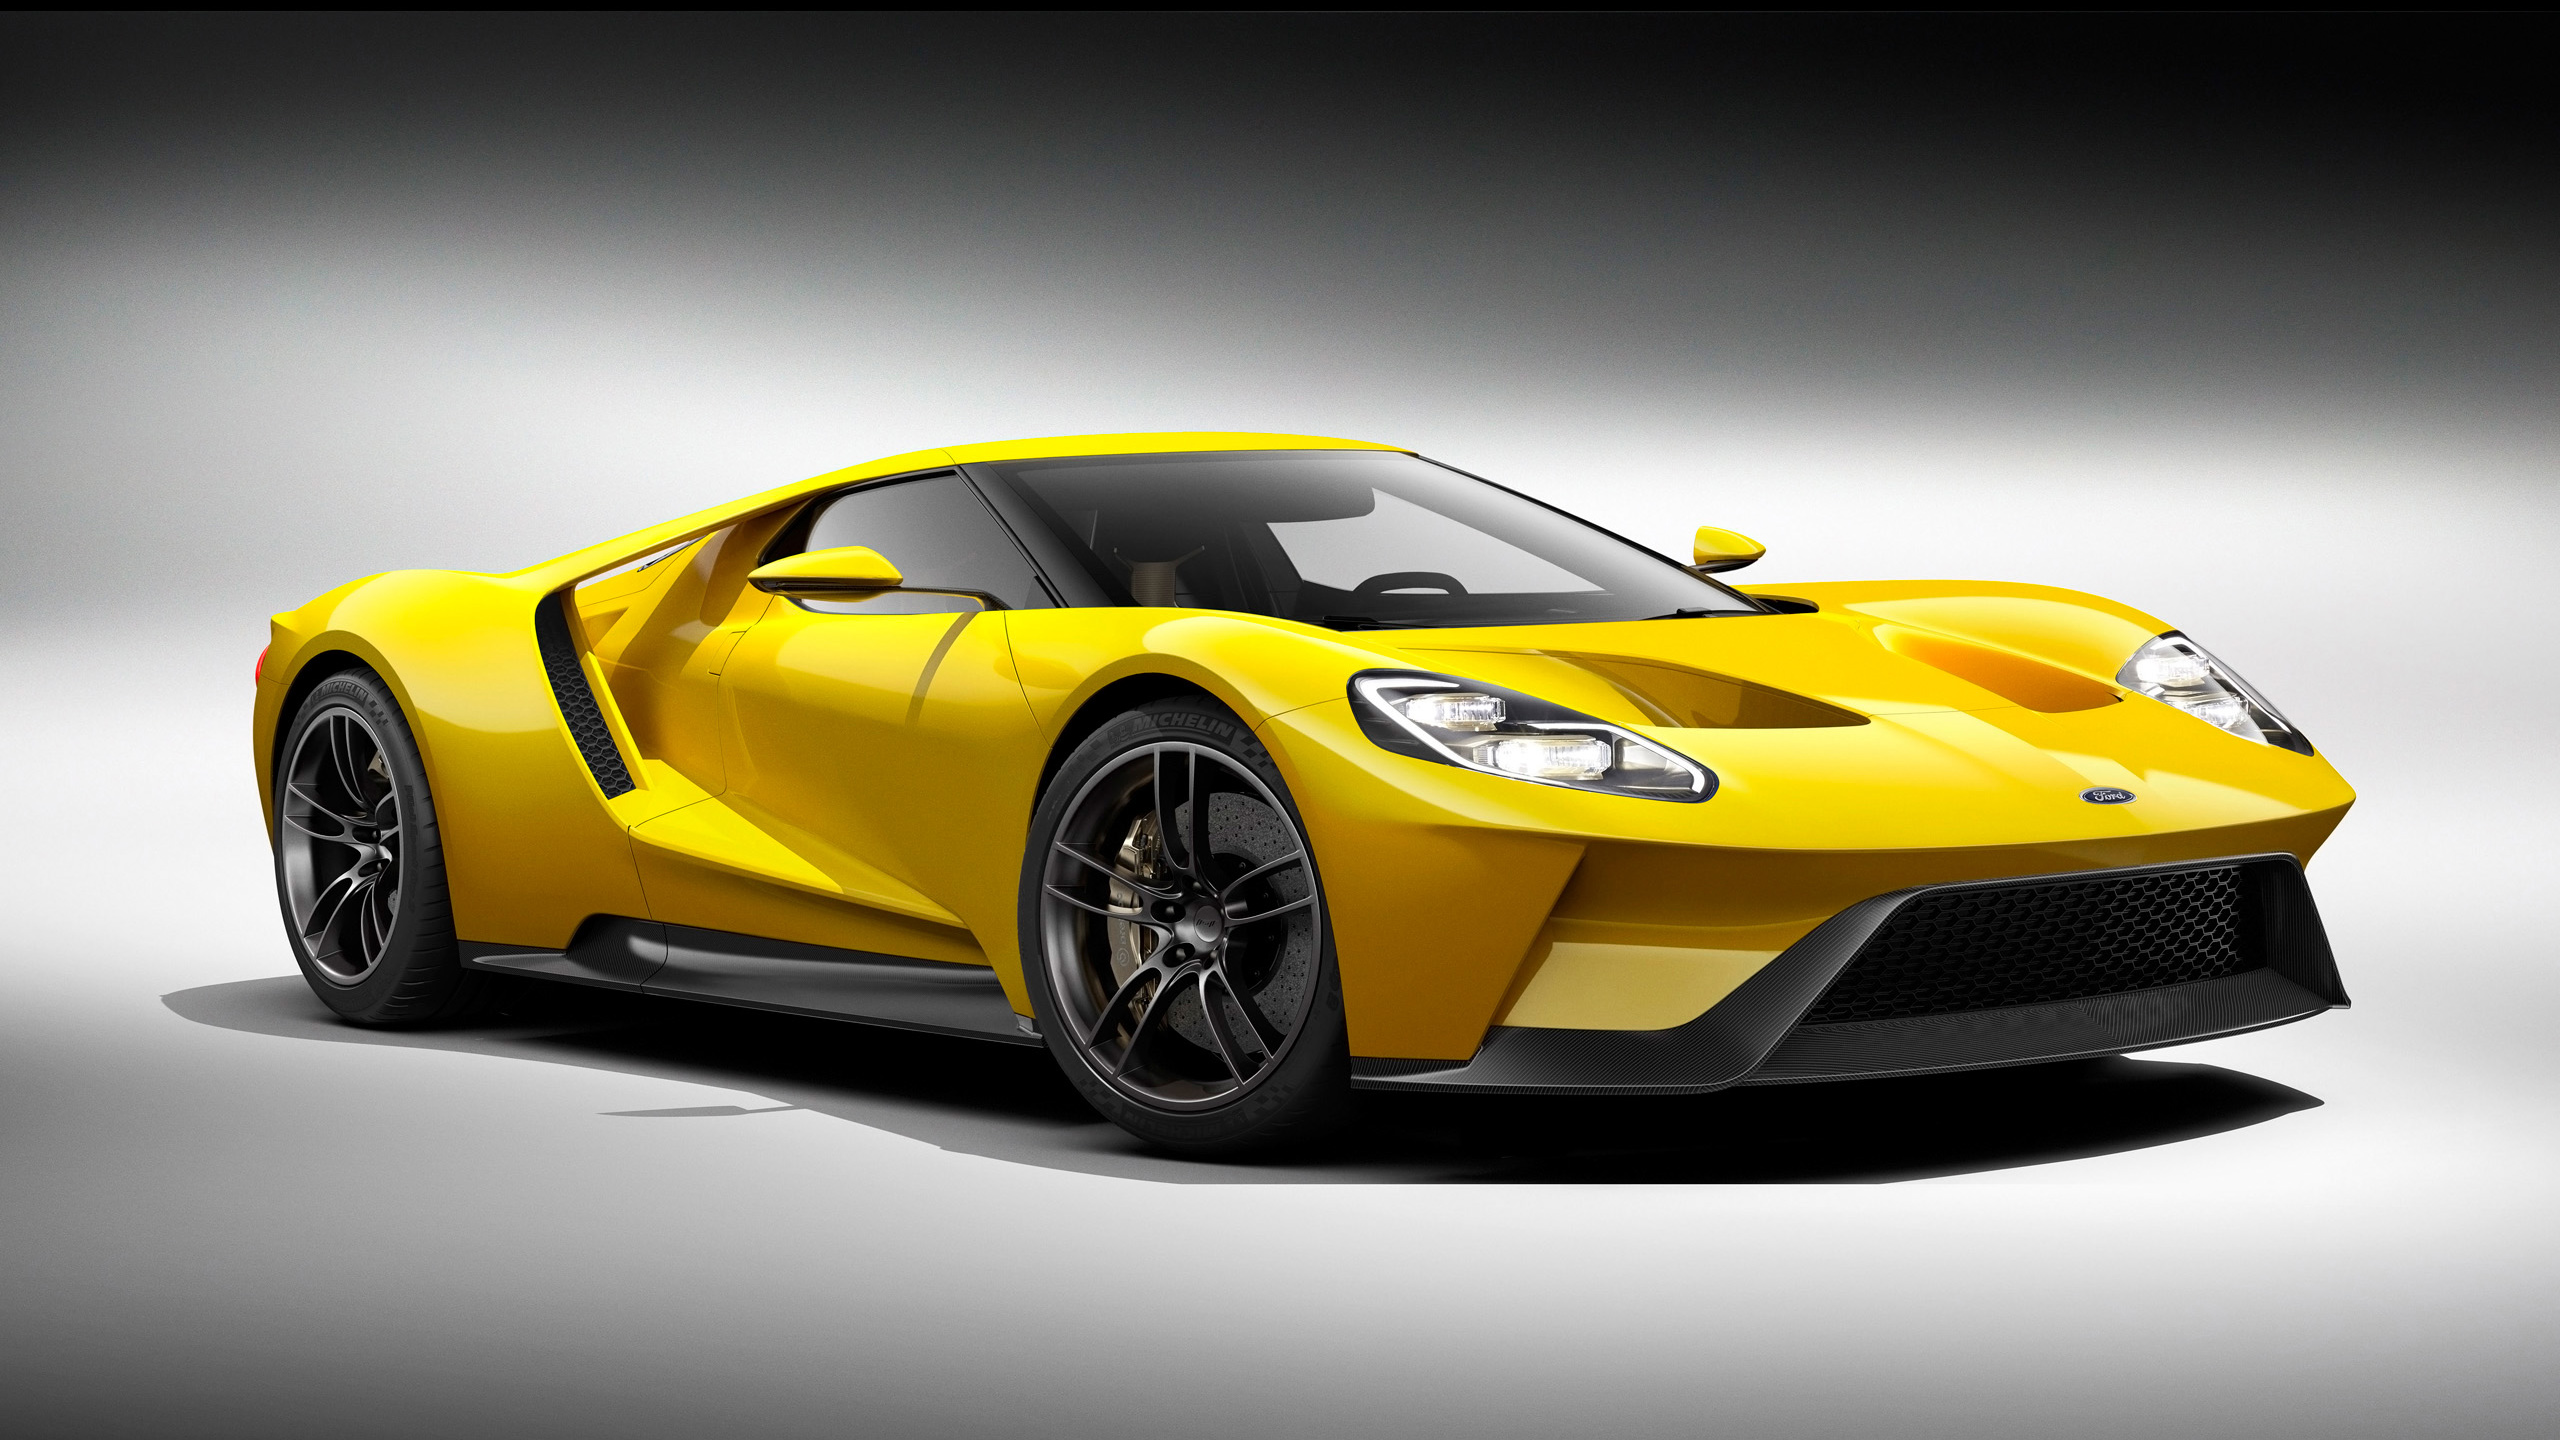 Ford Gt Images Ford Gt  Yellow Hd Wallpaper And Background Photos